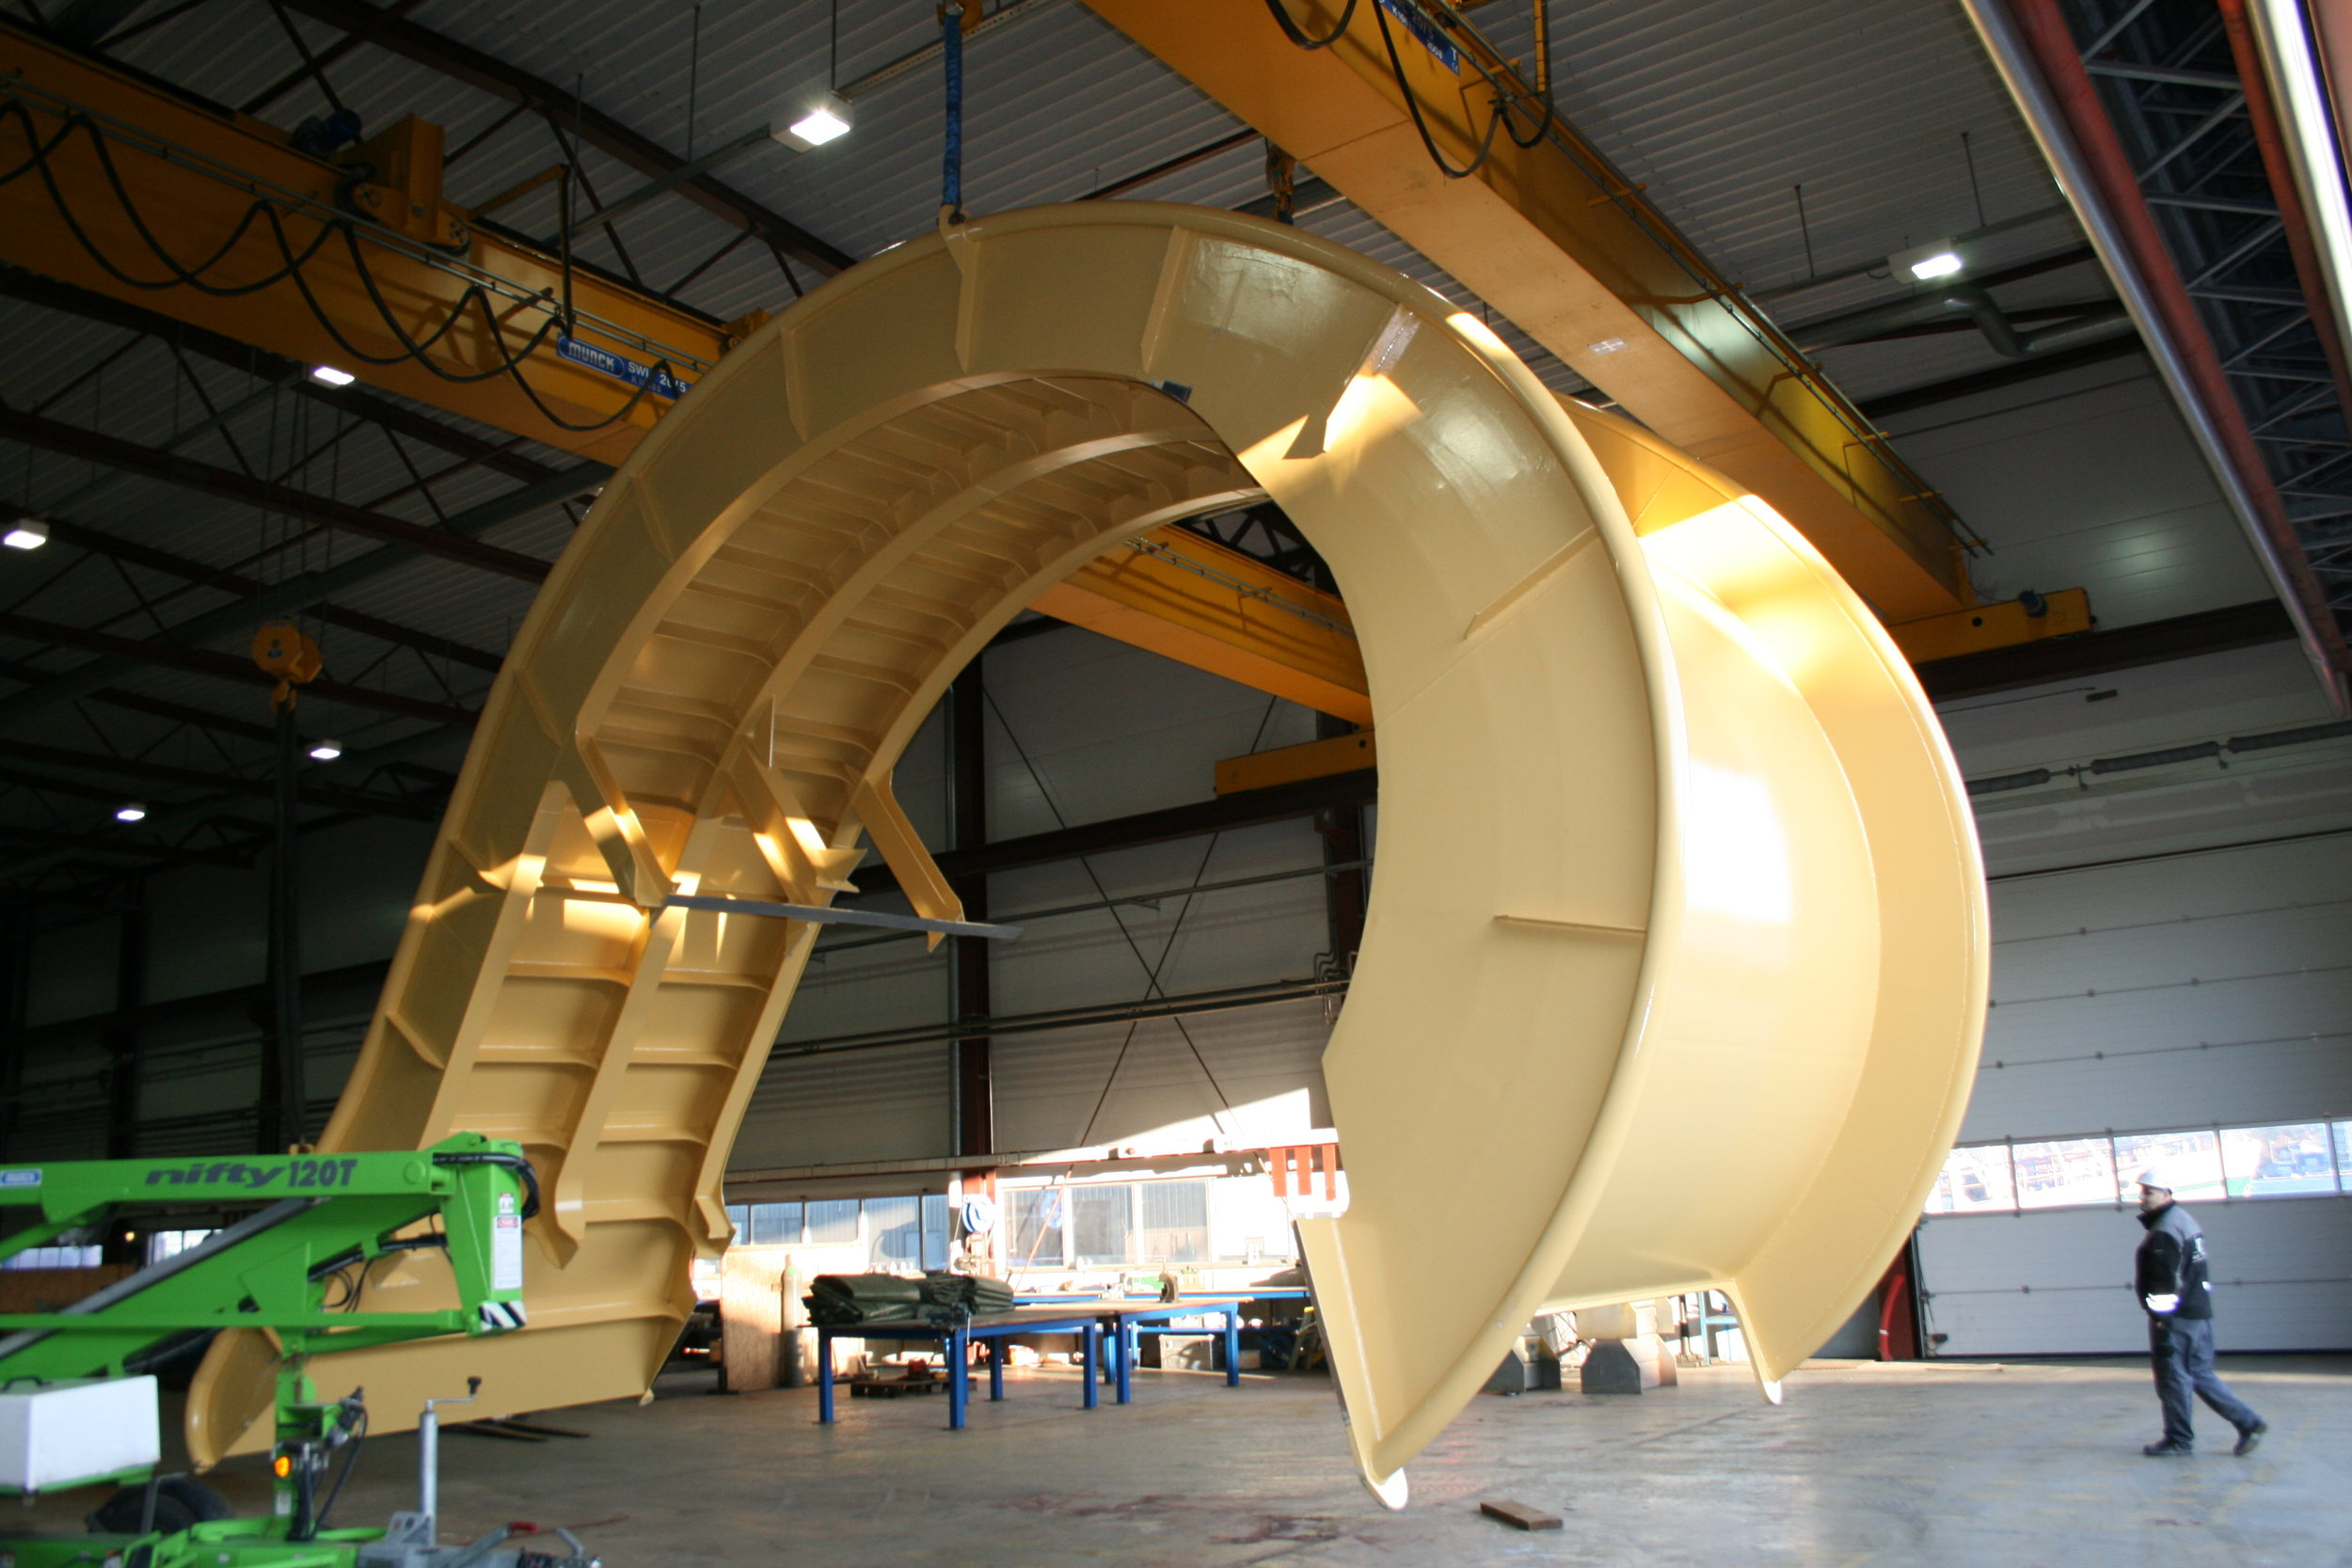 Cabel chute ready for delivery